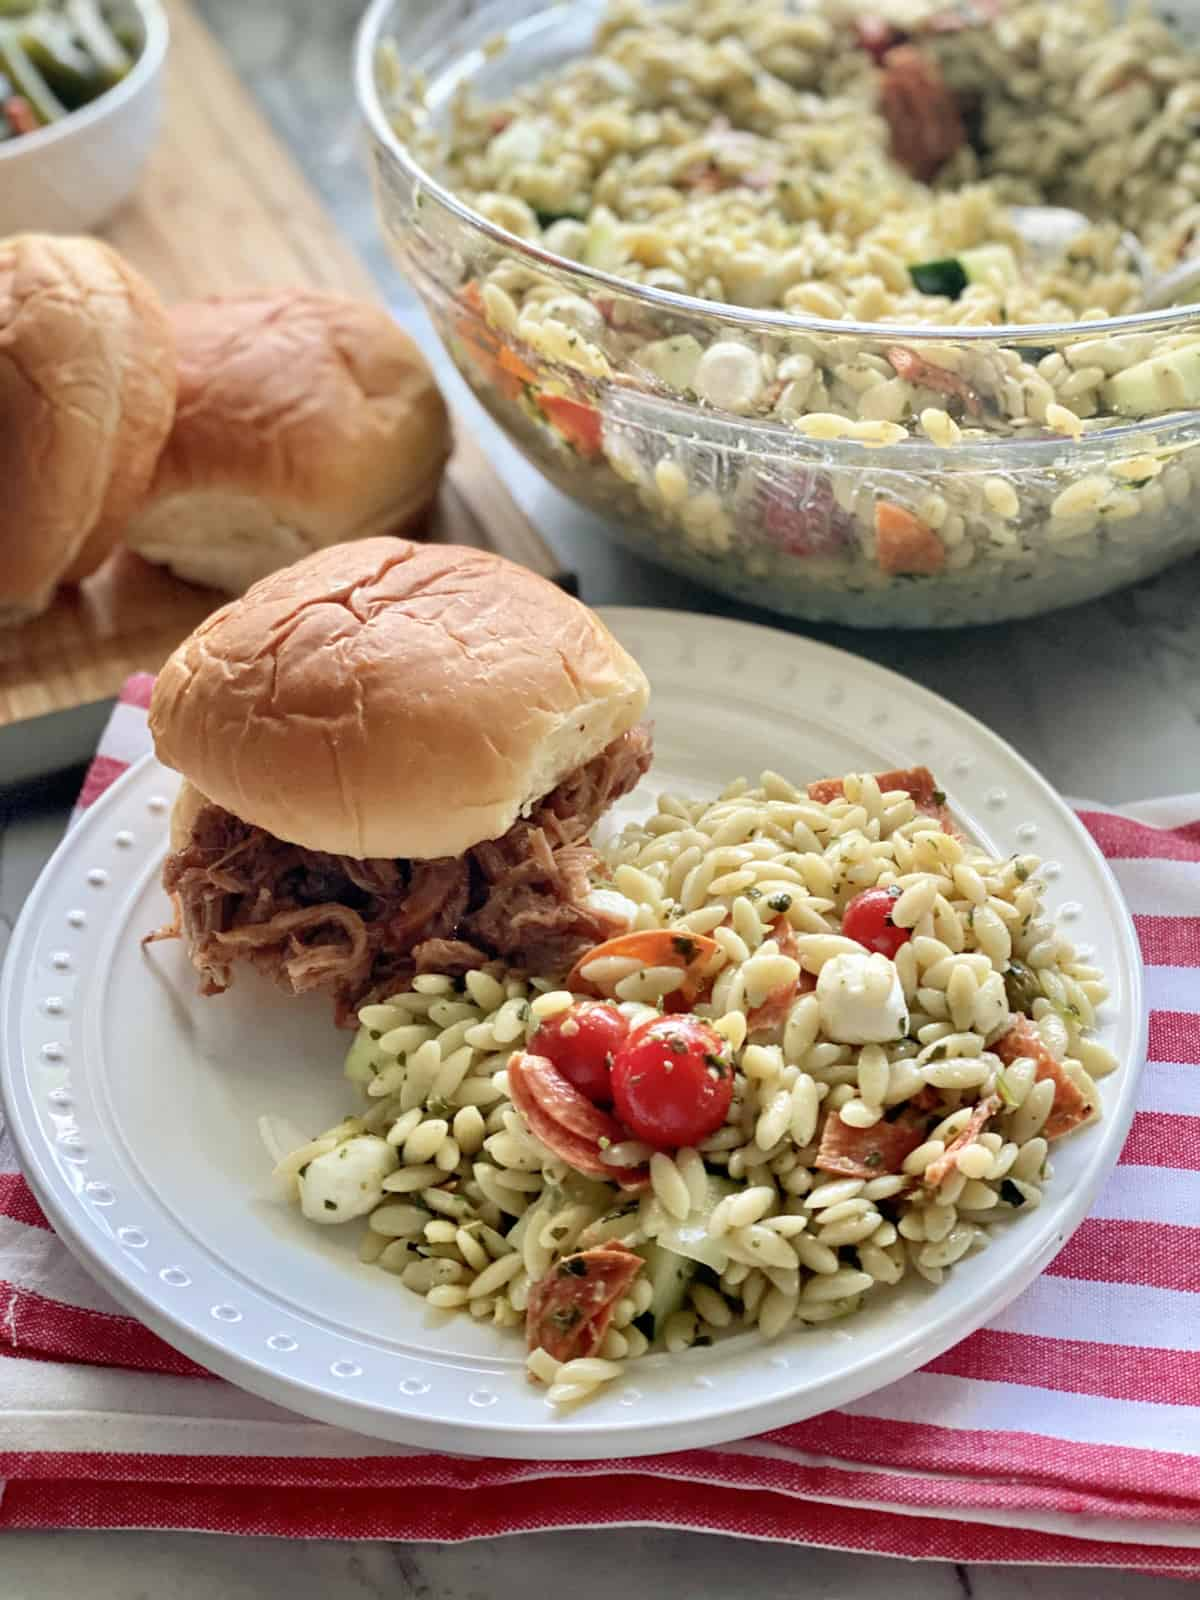 White plate filled with orzo pasta salad with pulled pork sandwich on the plate.